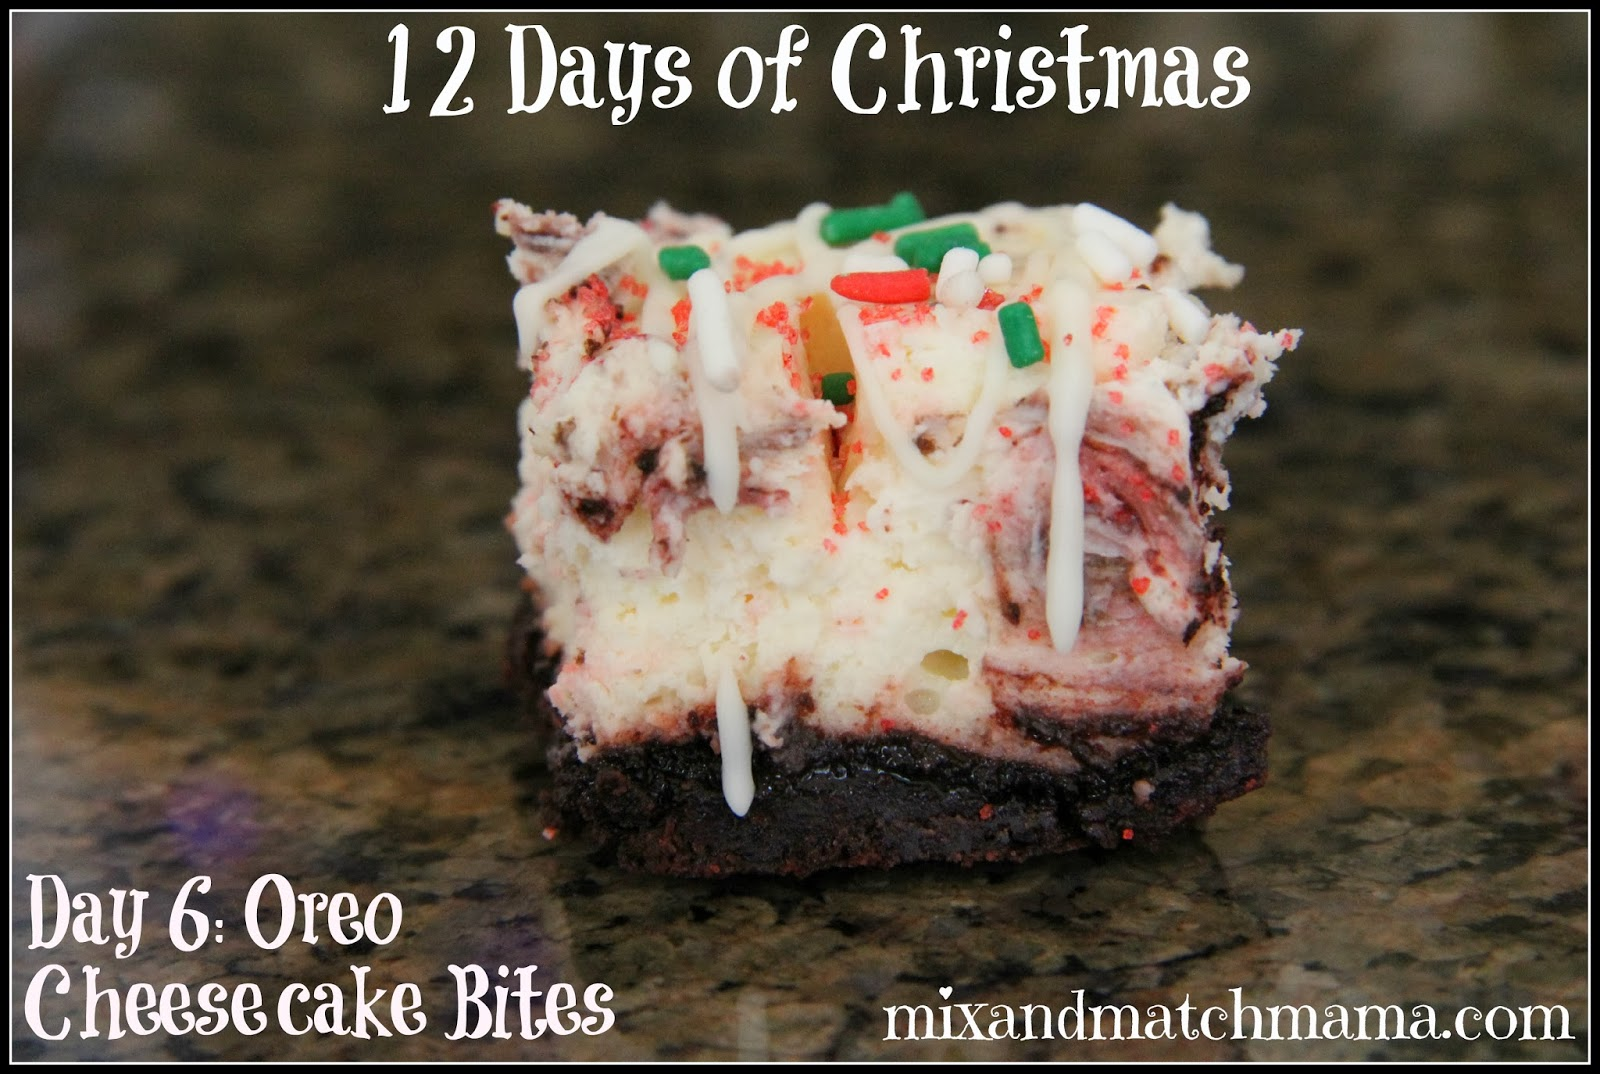 ... Mama: On the 6th Day of Christmas: I made yummy Oreo Cheesecake Bites